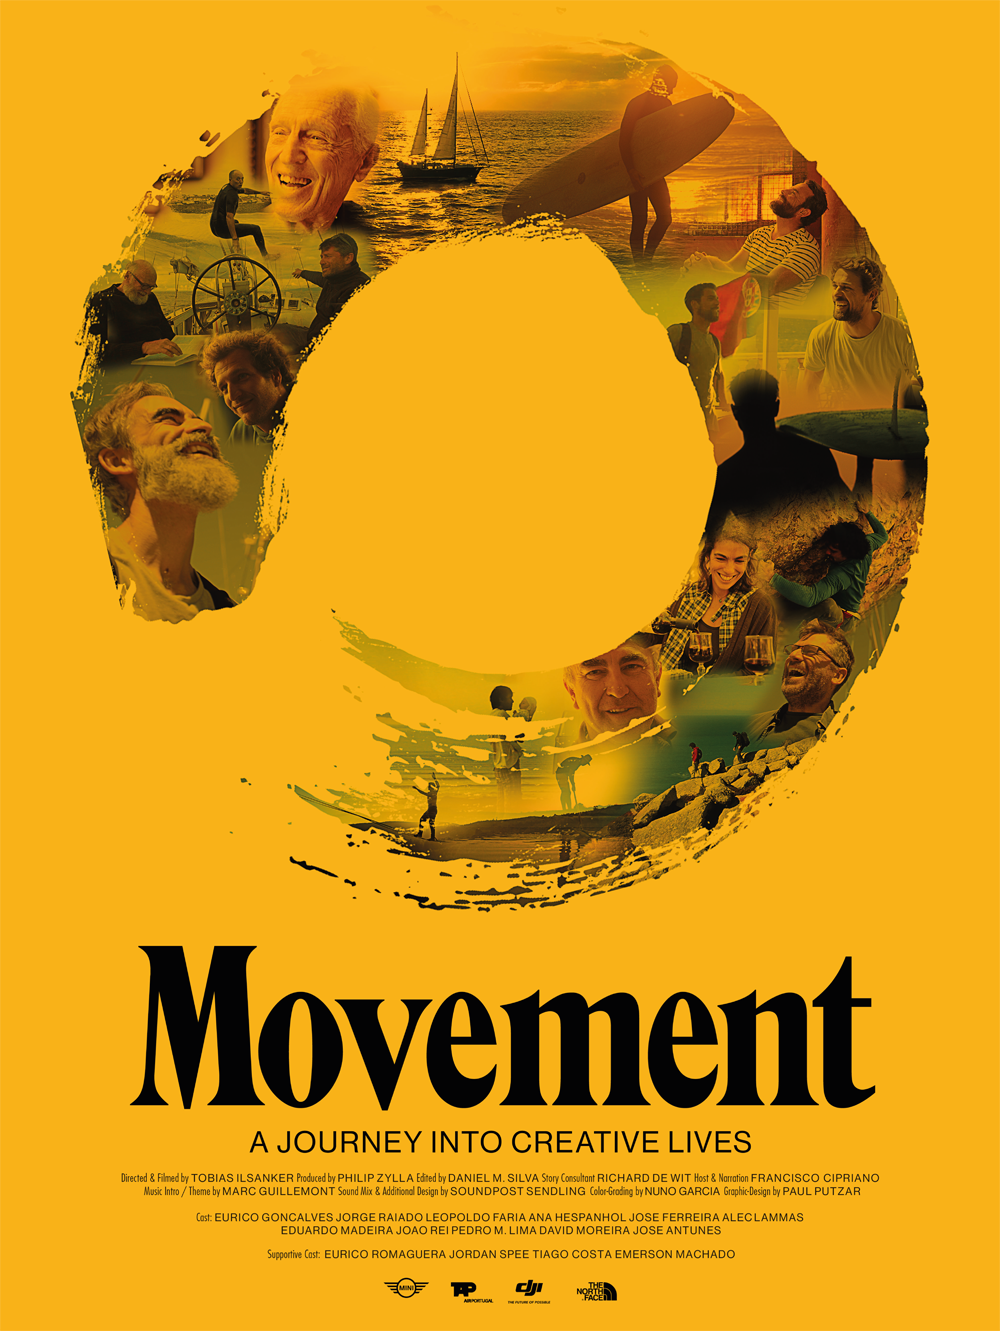 Movement_a journey into creative lives_Film Poster.png